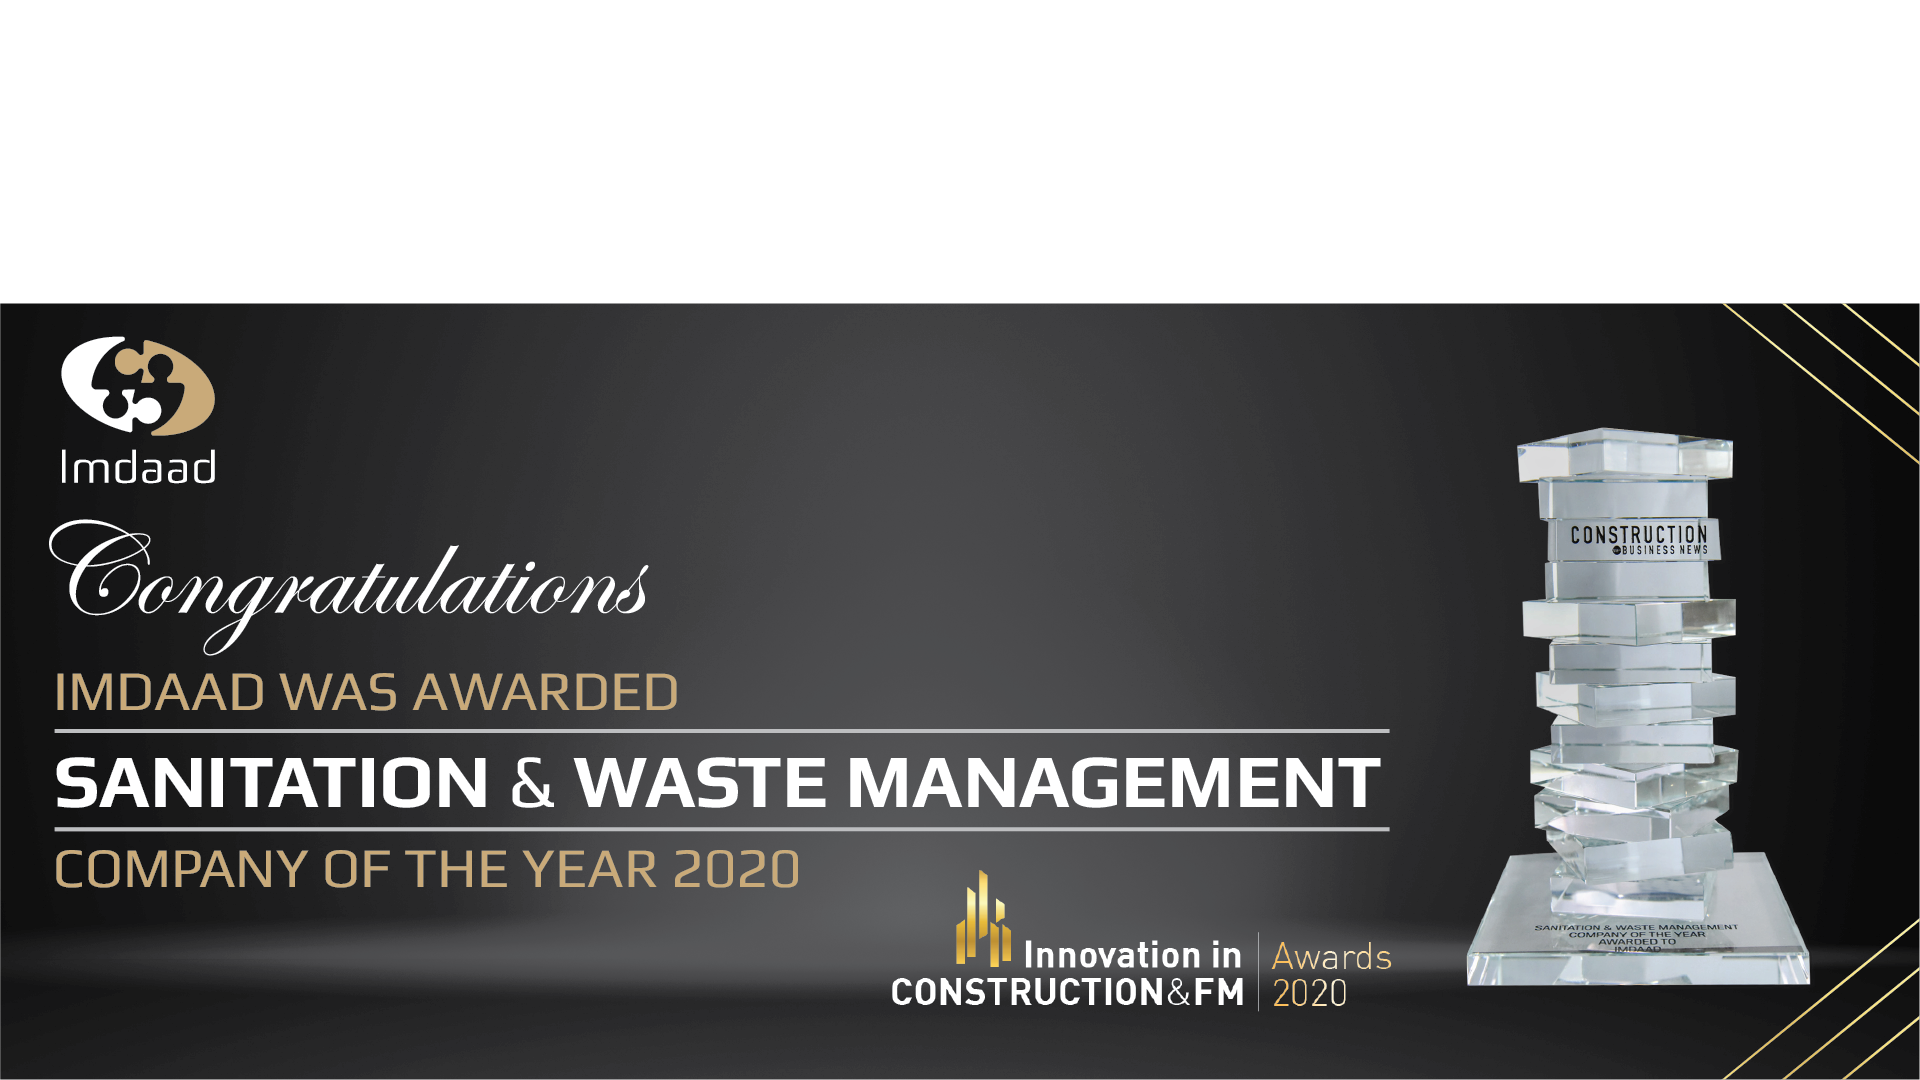 Imdaad Crowned Sanitation and Waste Management Company of the Year